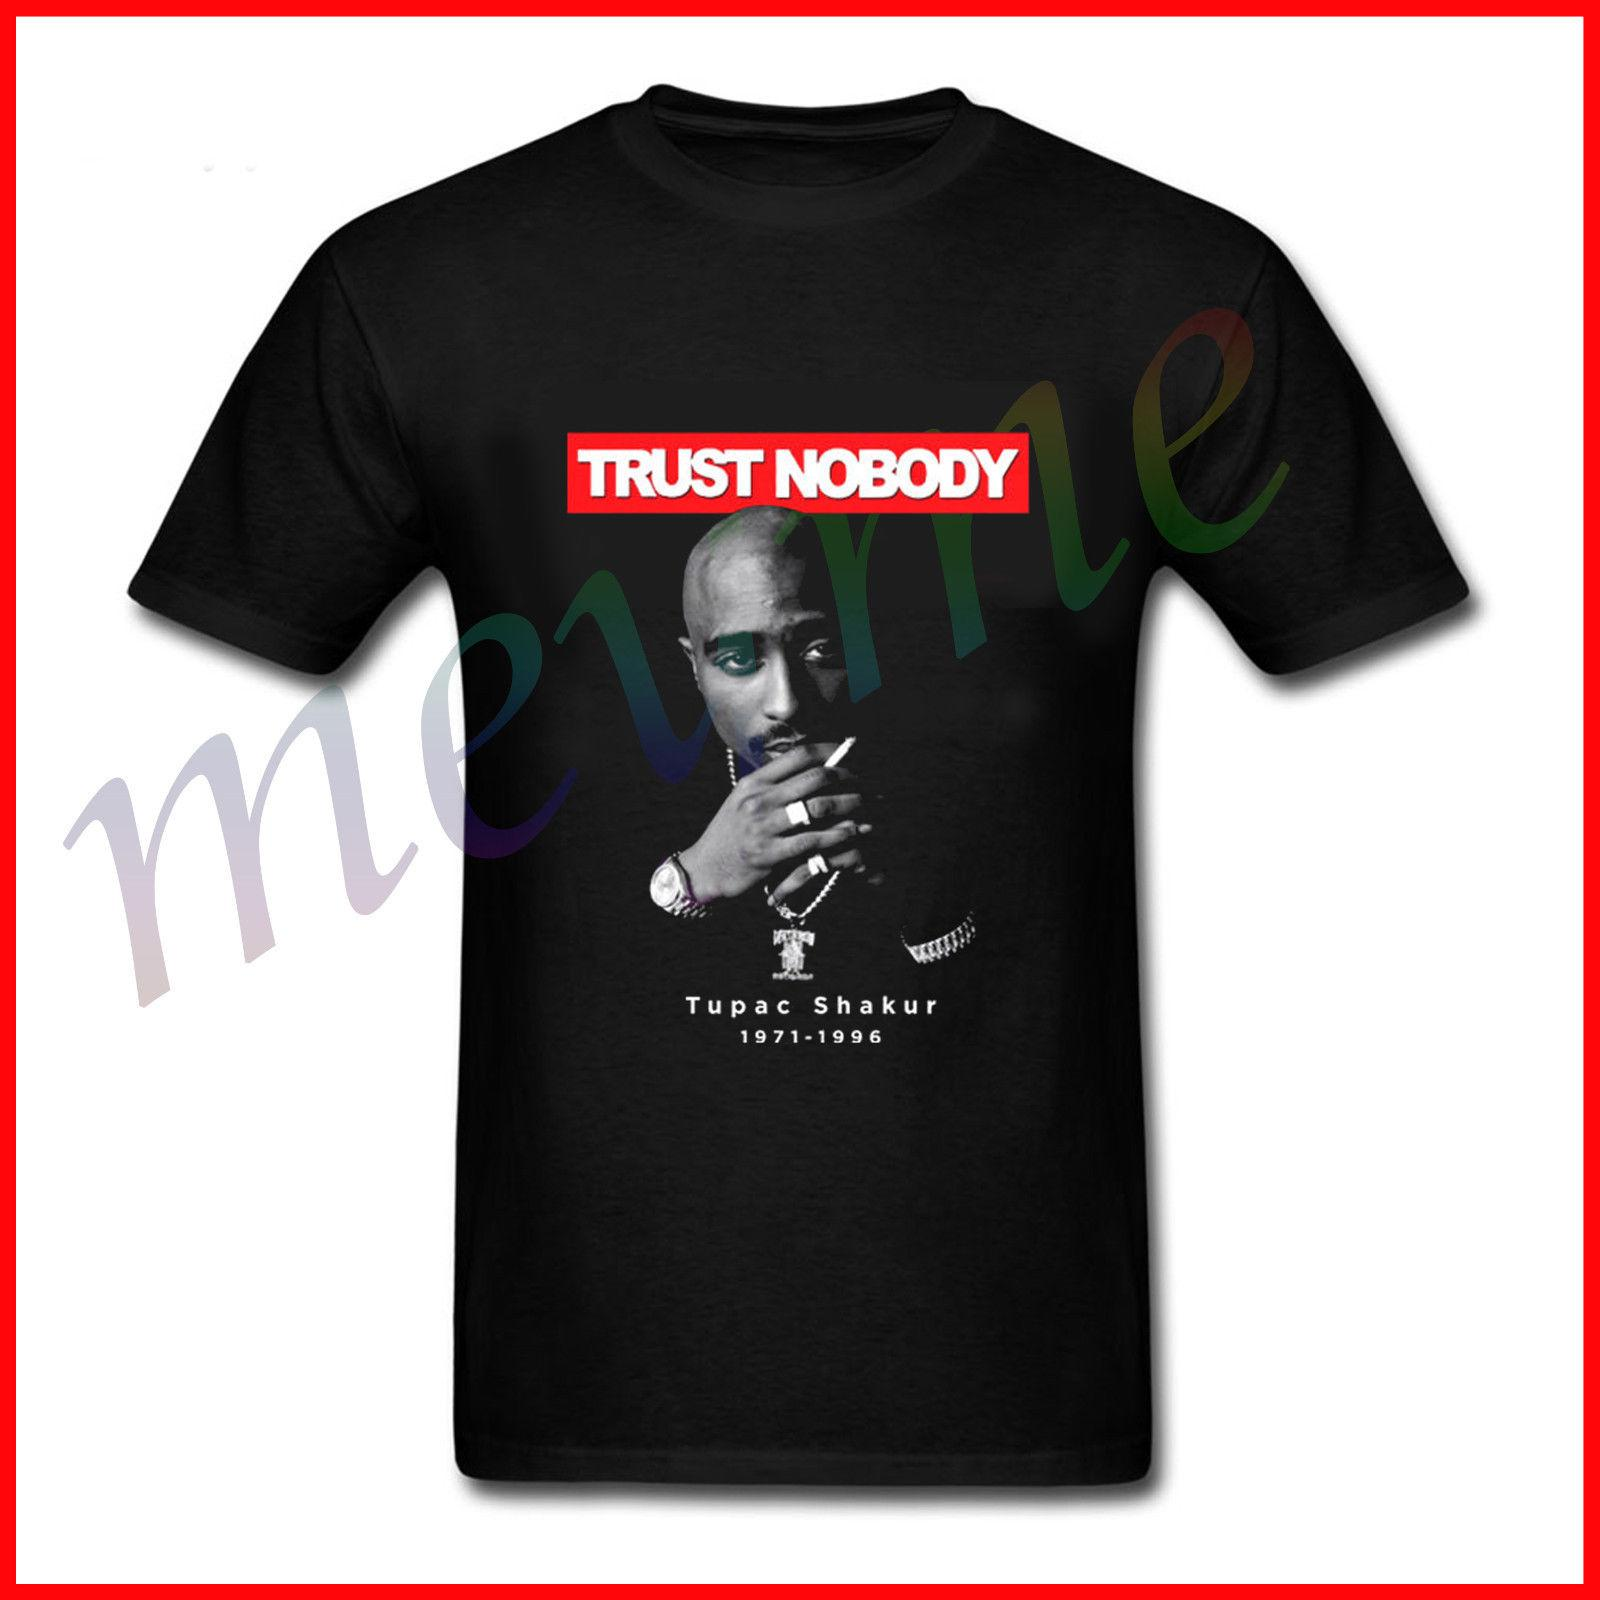 b6c854992896 2pac Shakur Me Against The World, Trust Nobody Black T SHIRT Fashion Suit  Hat Pink T Shirt RETRO VINTAGE Classic T Shirt Deal With It T Shirt Ts  Shirts From ...